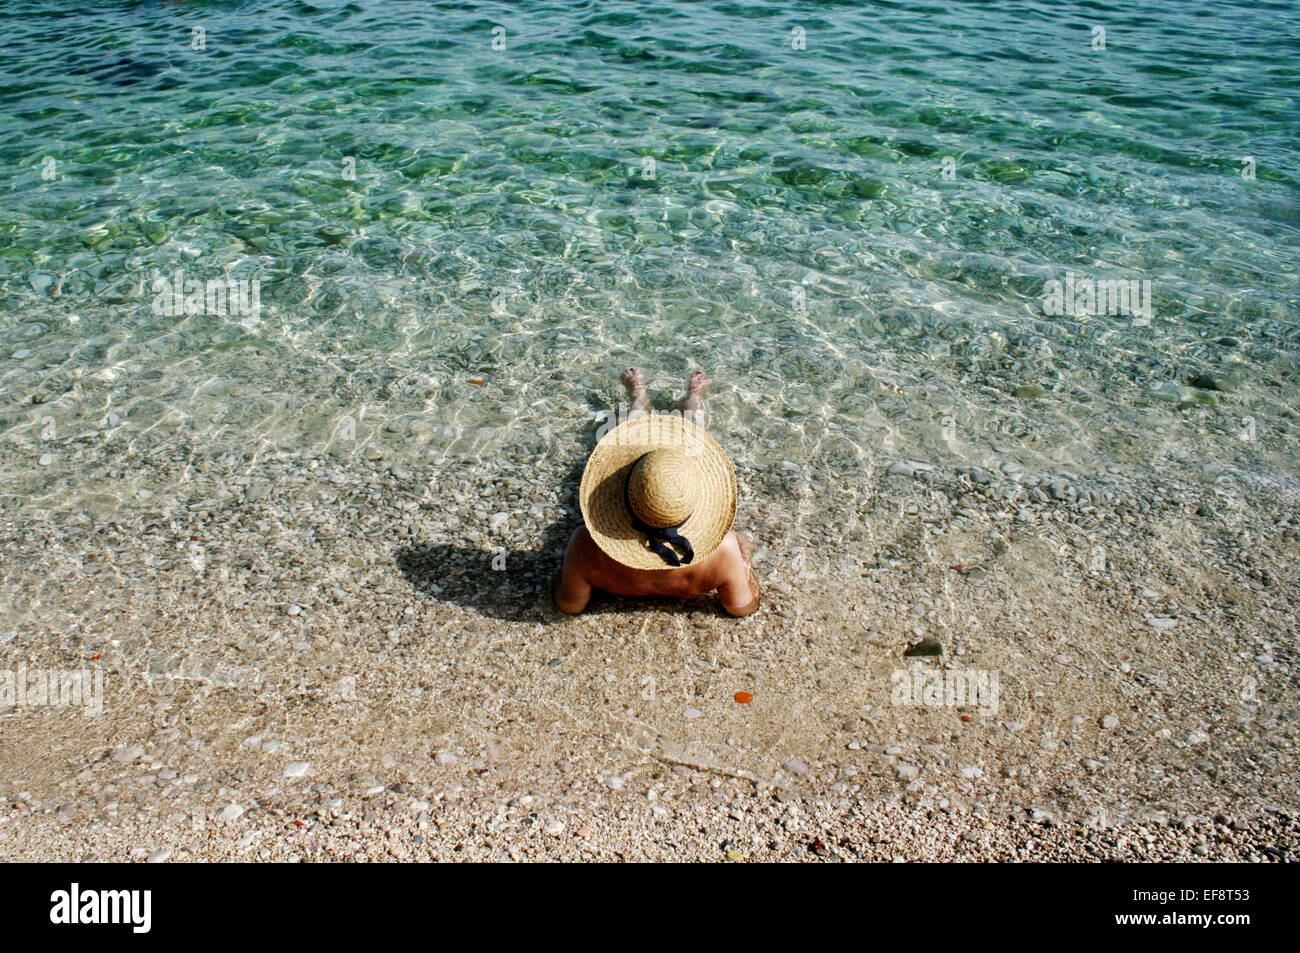 Croatia, Woman with straw hat sunbathing - Stock Image